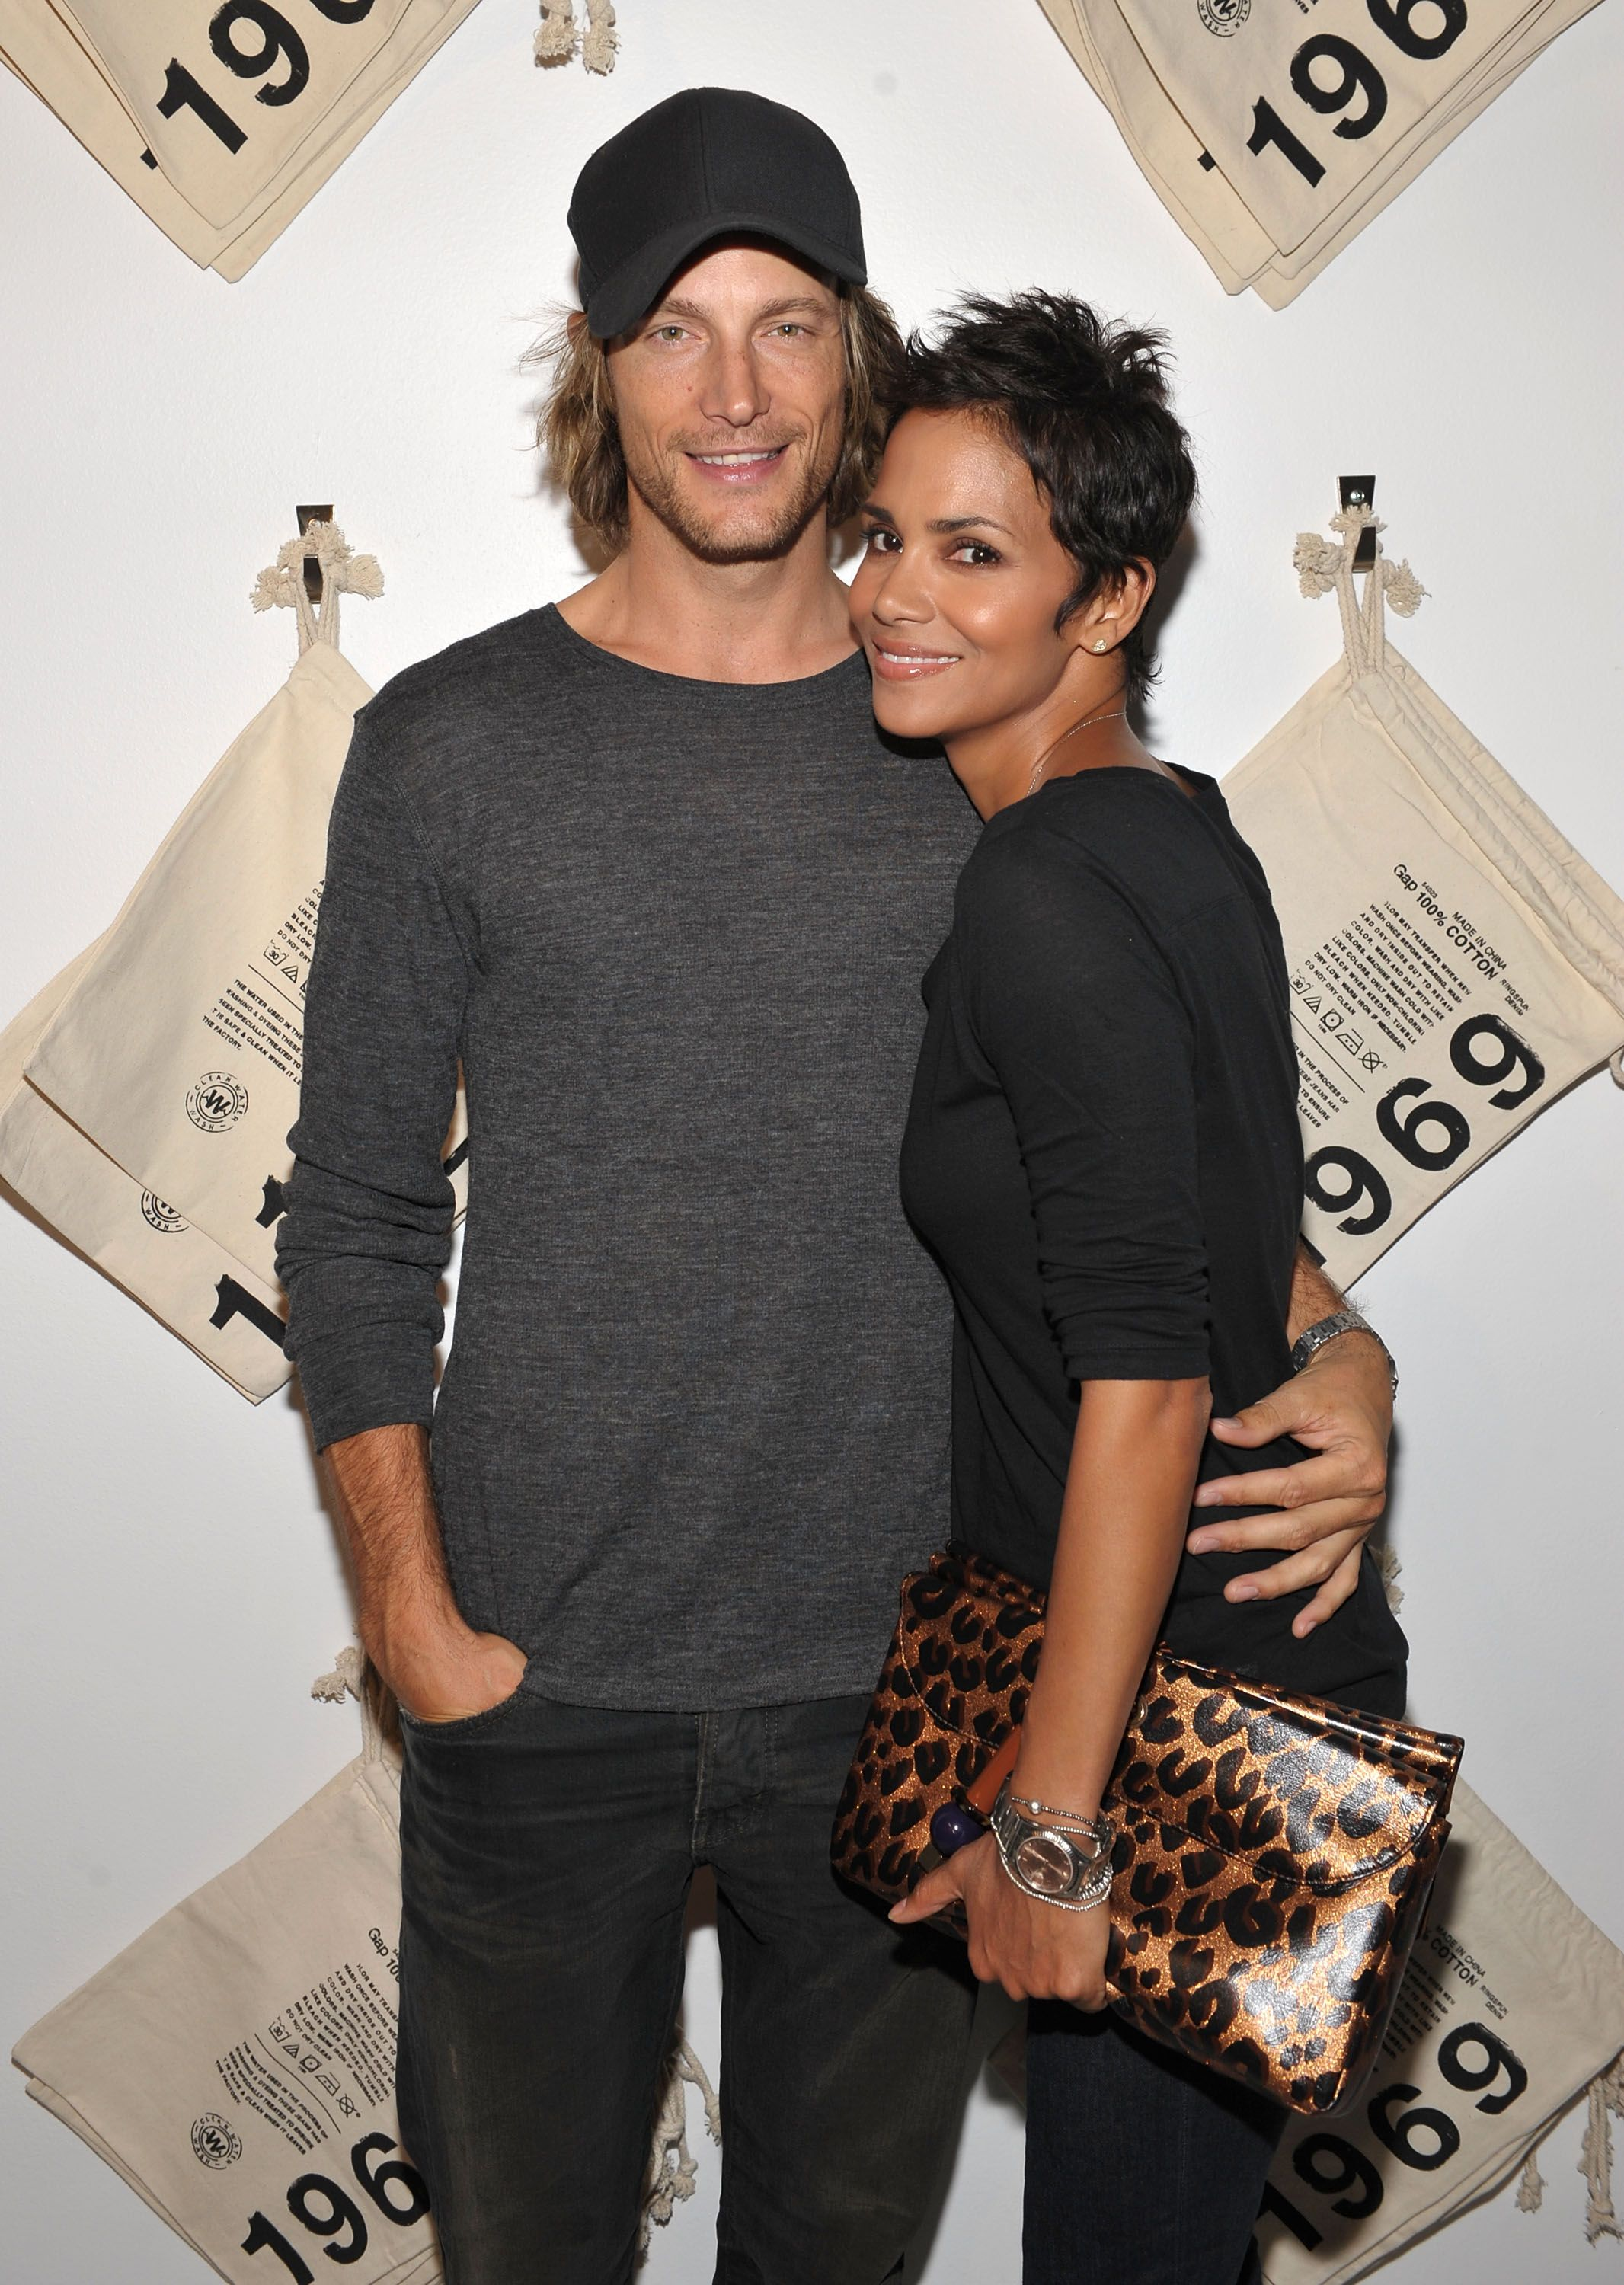 Actress Halle Berry (R) and Gabriel Aubry attend the launch event for Gap's 1969 Jean Shop on Robertson Blvd on August 6, 2009 in West Hollywood, California. | Source: Getty Images